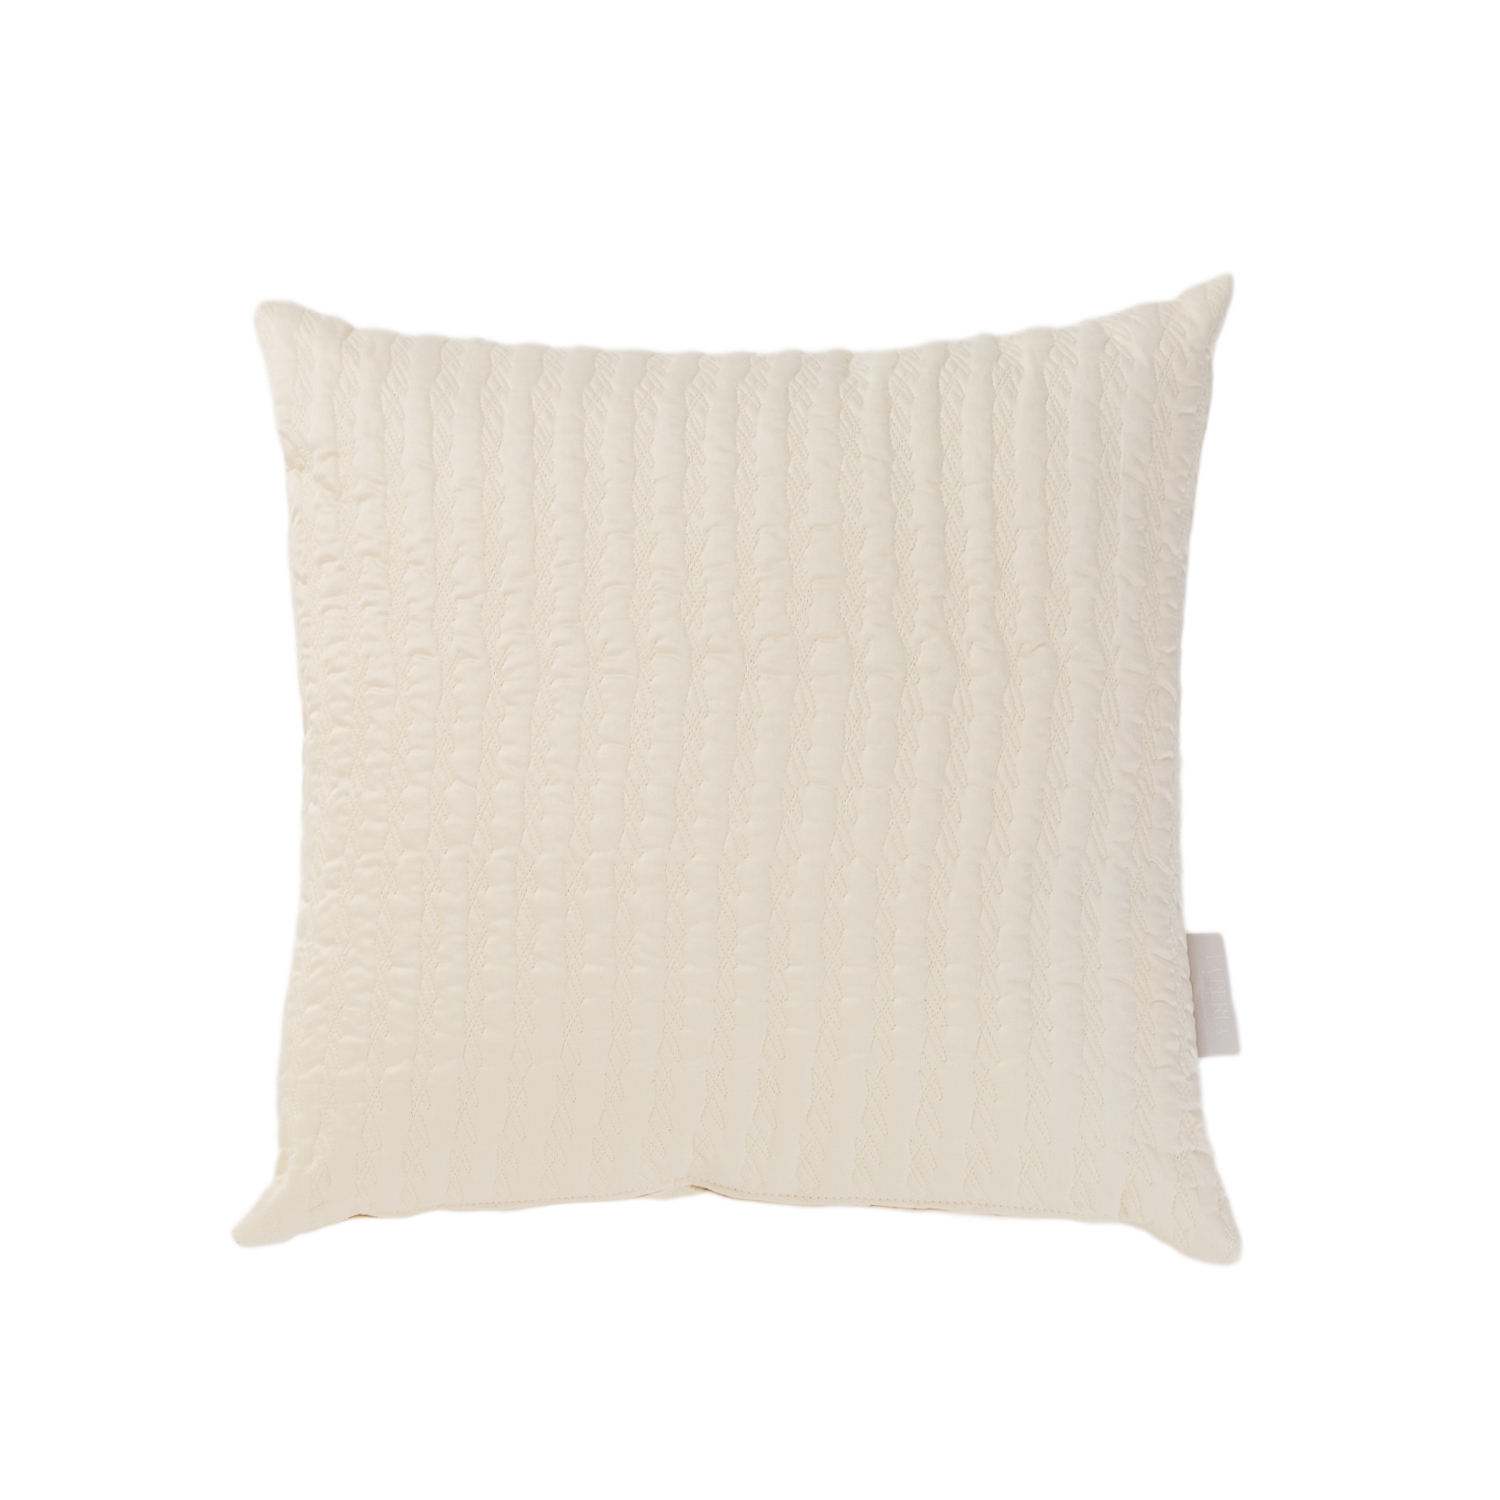 CLEOPATRA DECORATIVE PILLOW-50x50-IVORY